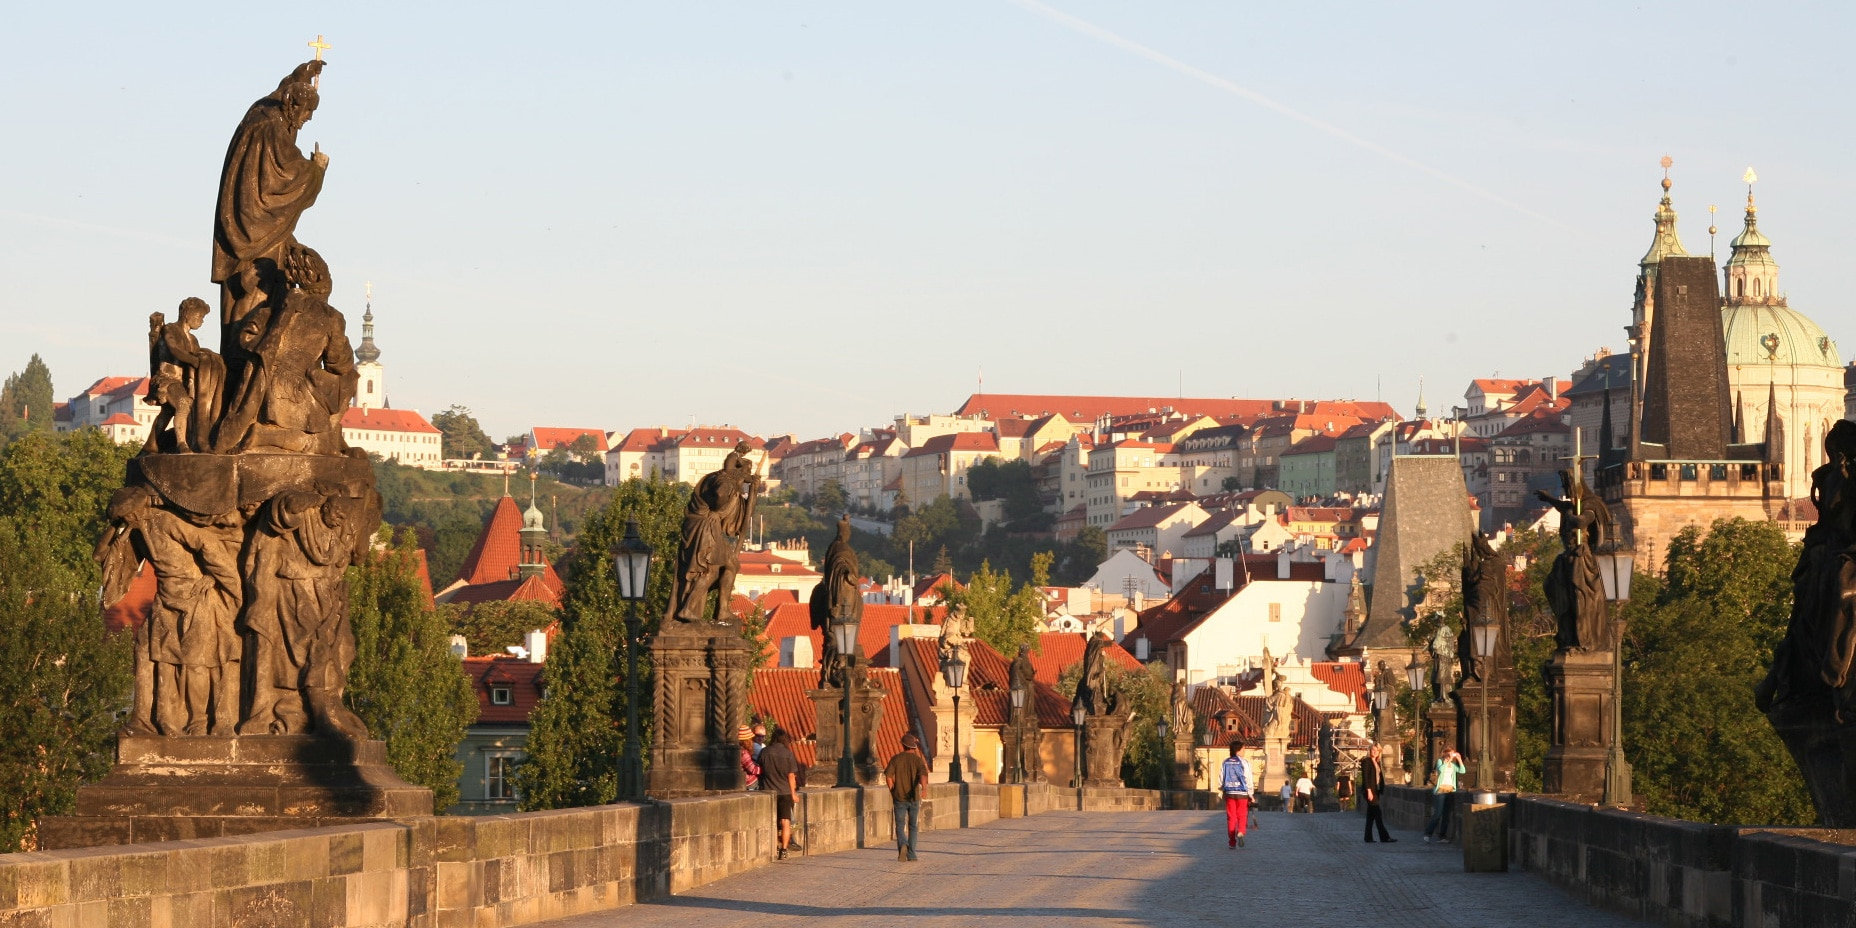 Statues featuring imposing figures line the stone walls on both sides of the Charles Bridge